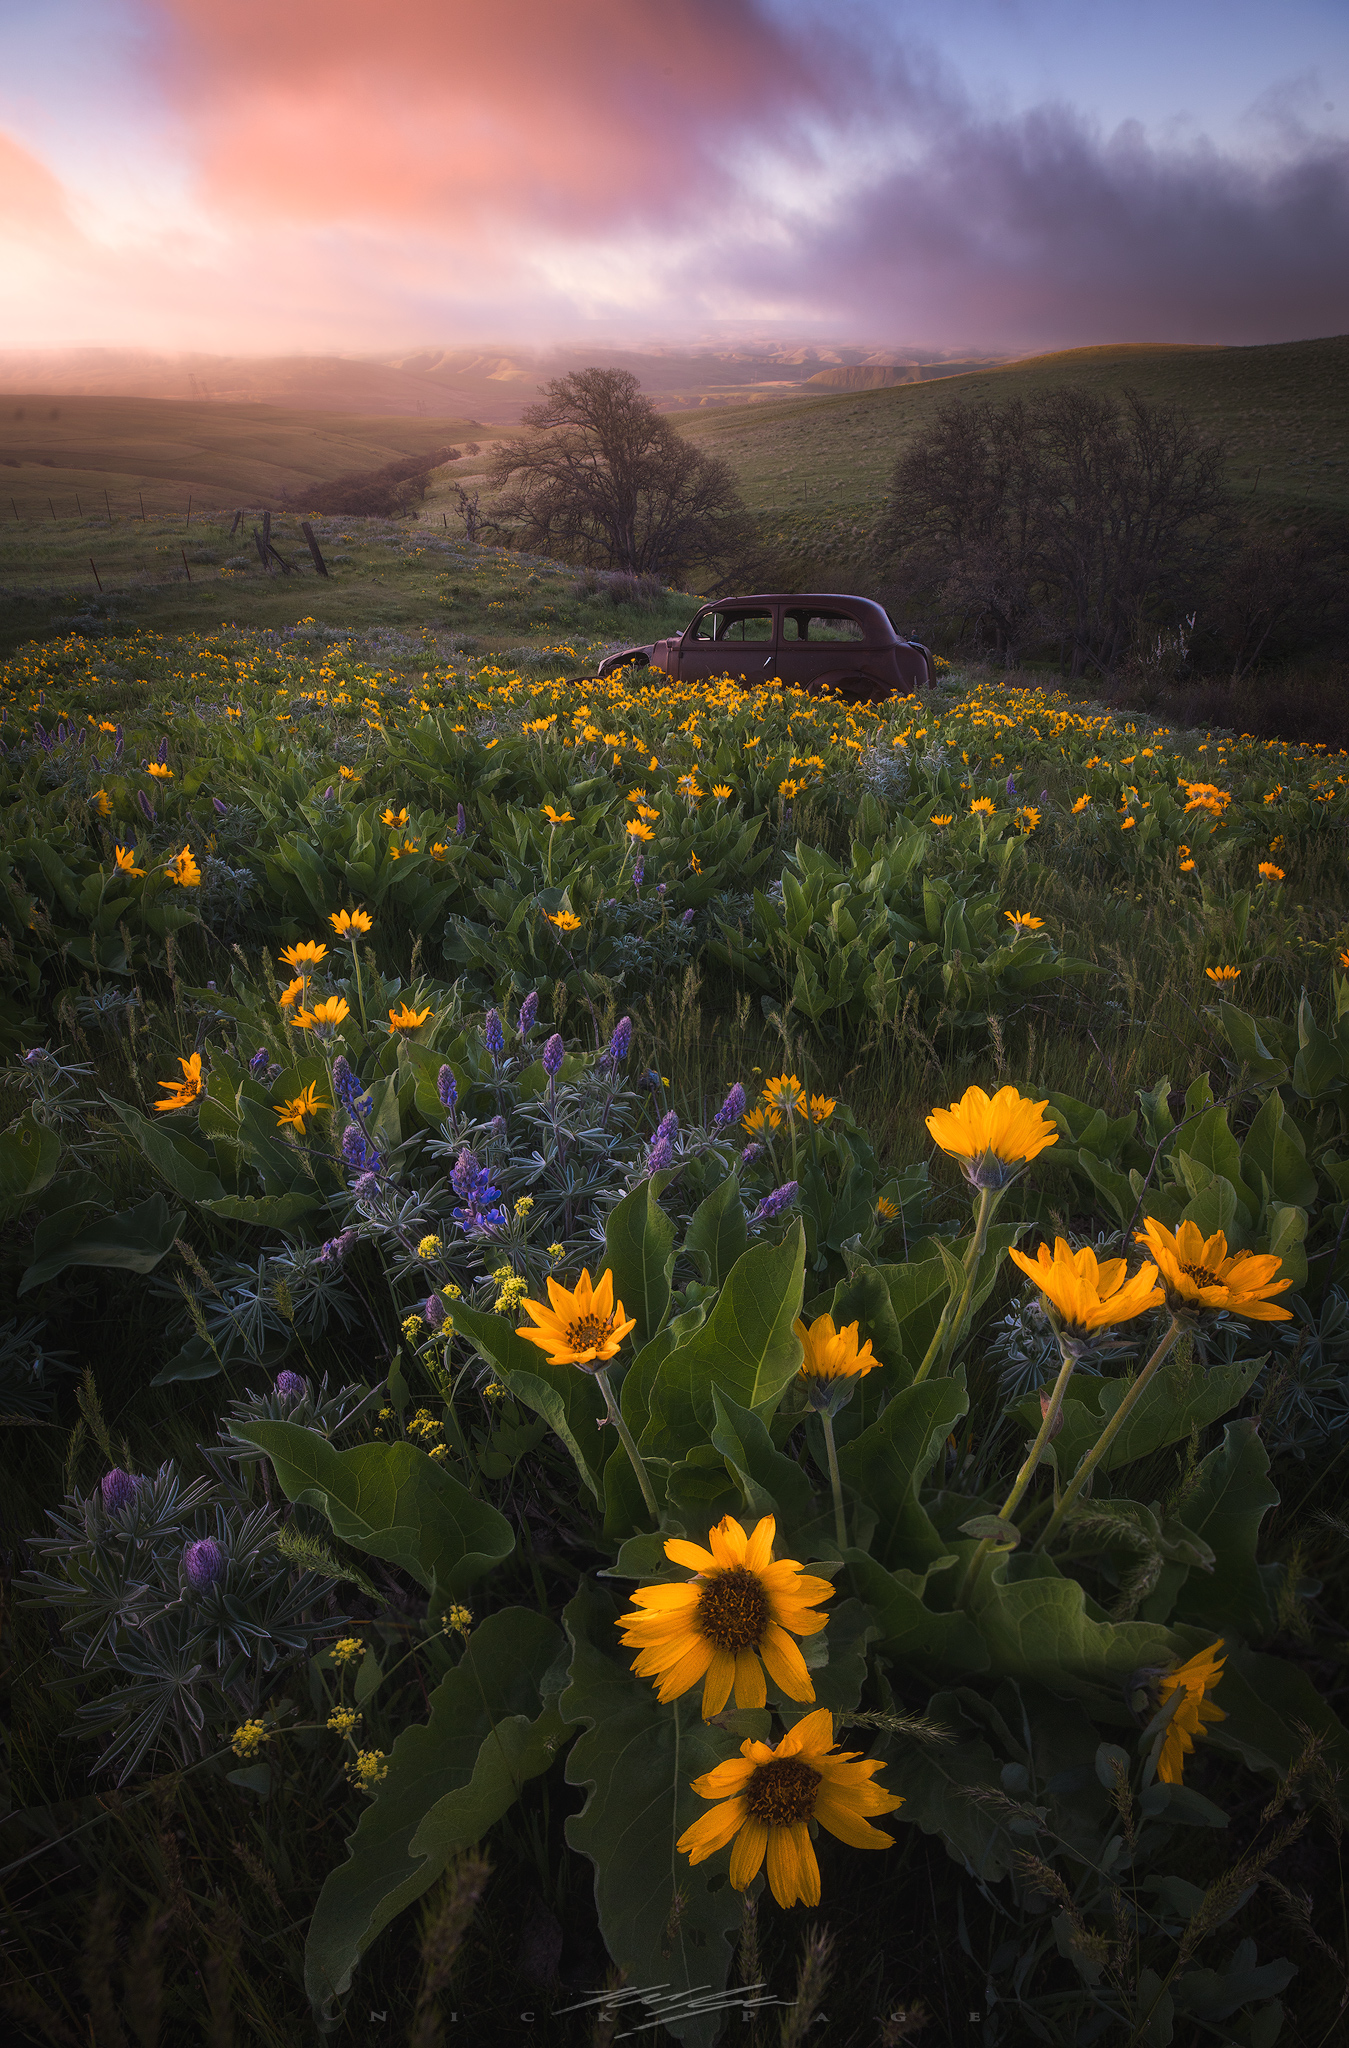 Dalles-mountain-ranch-sunrise.jpg